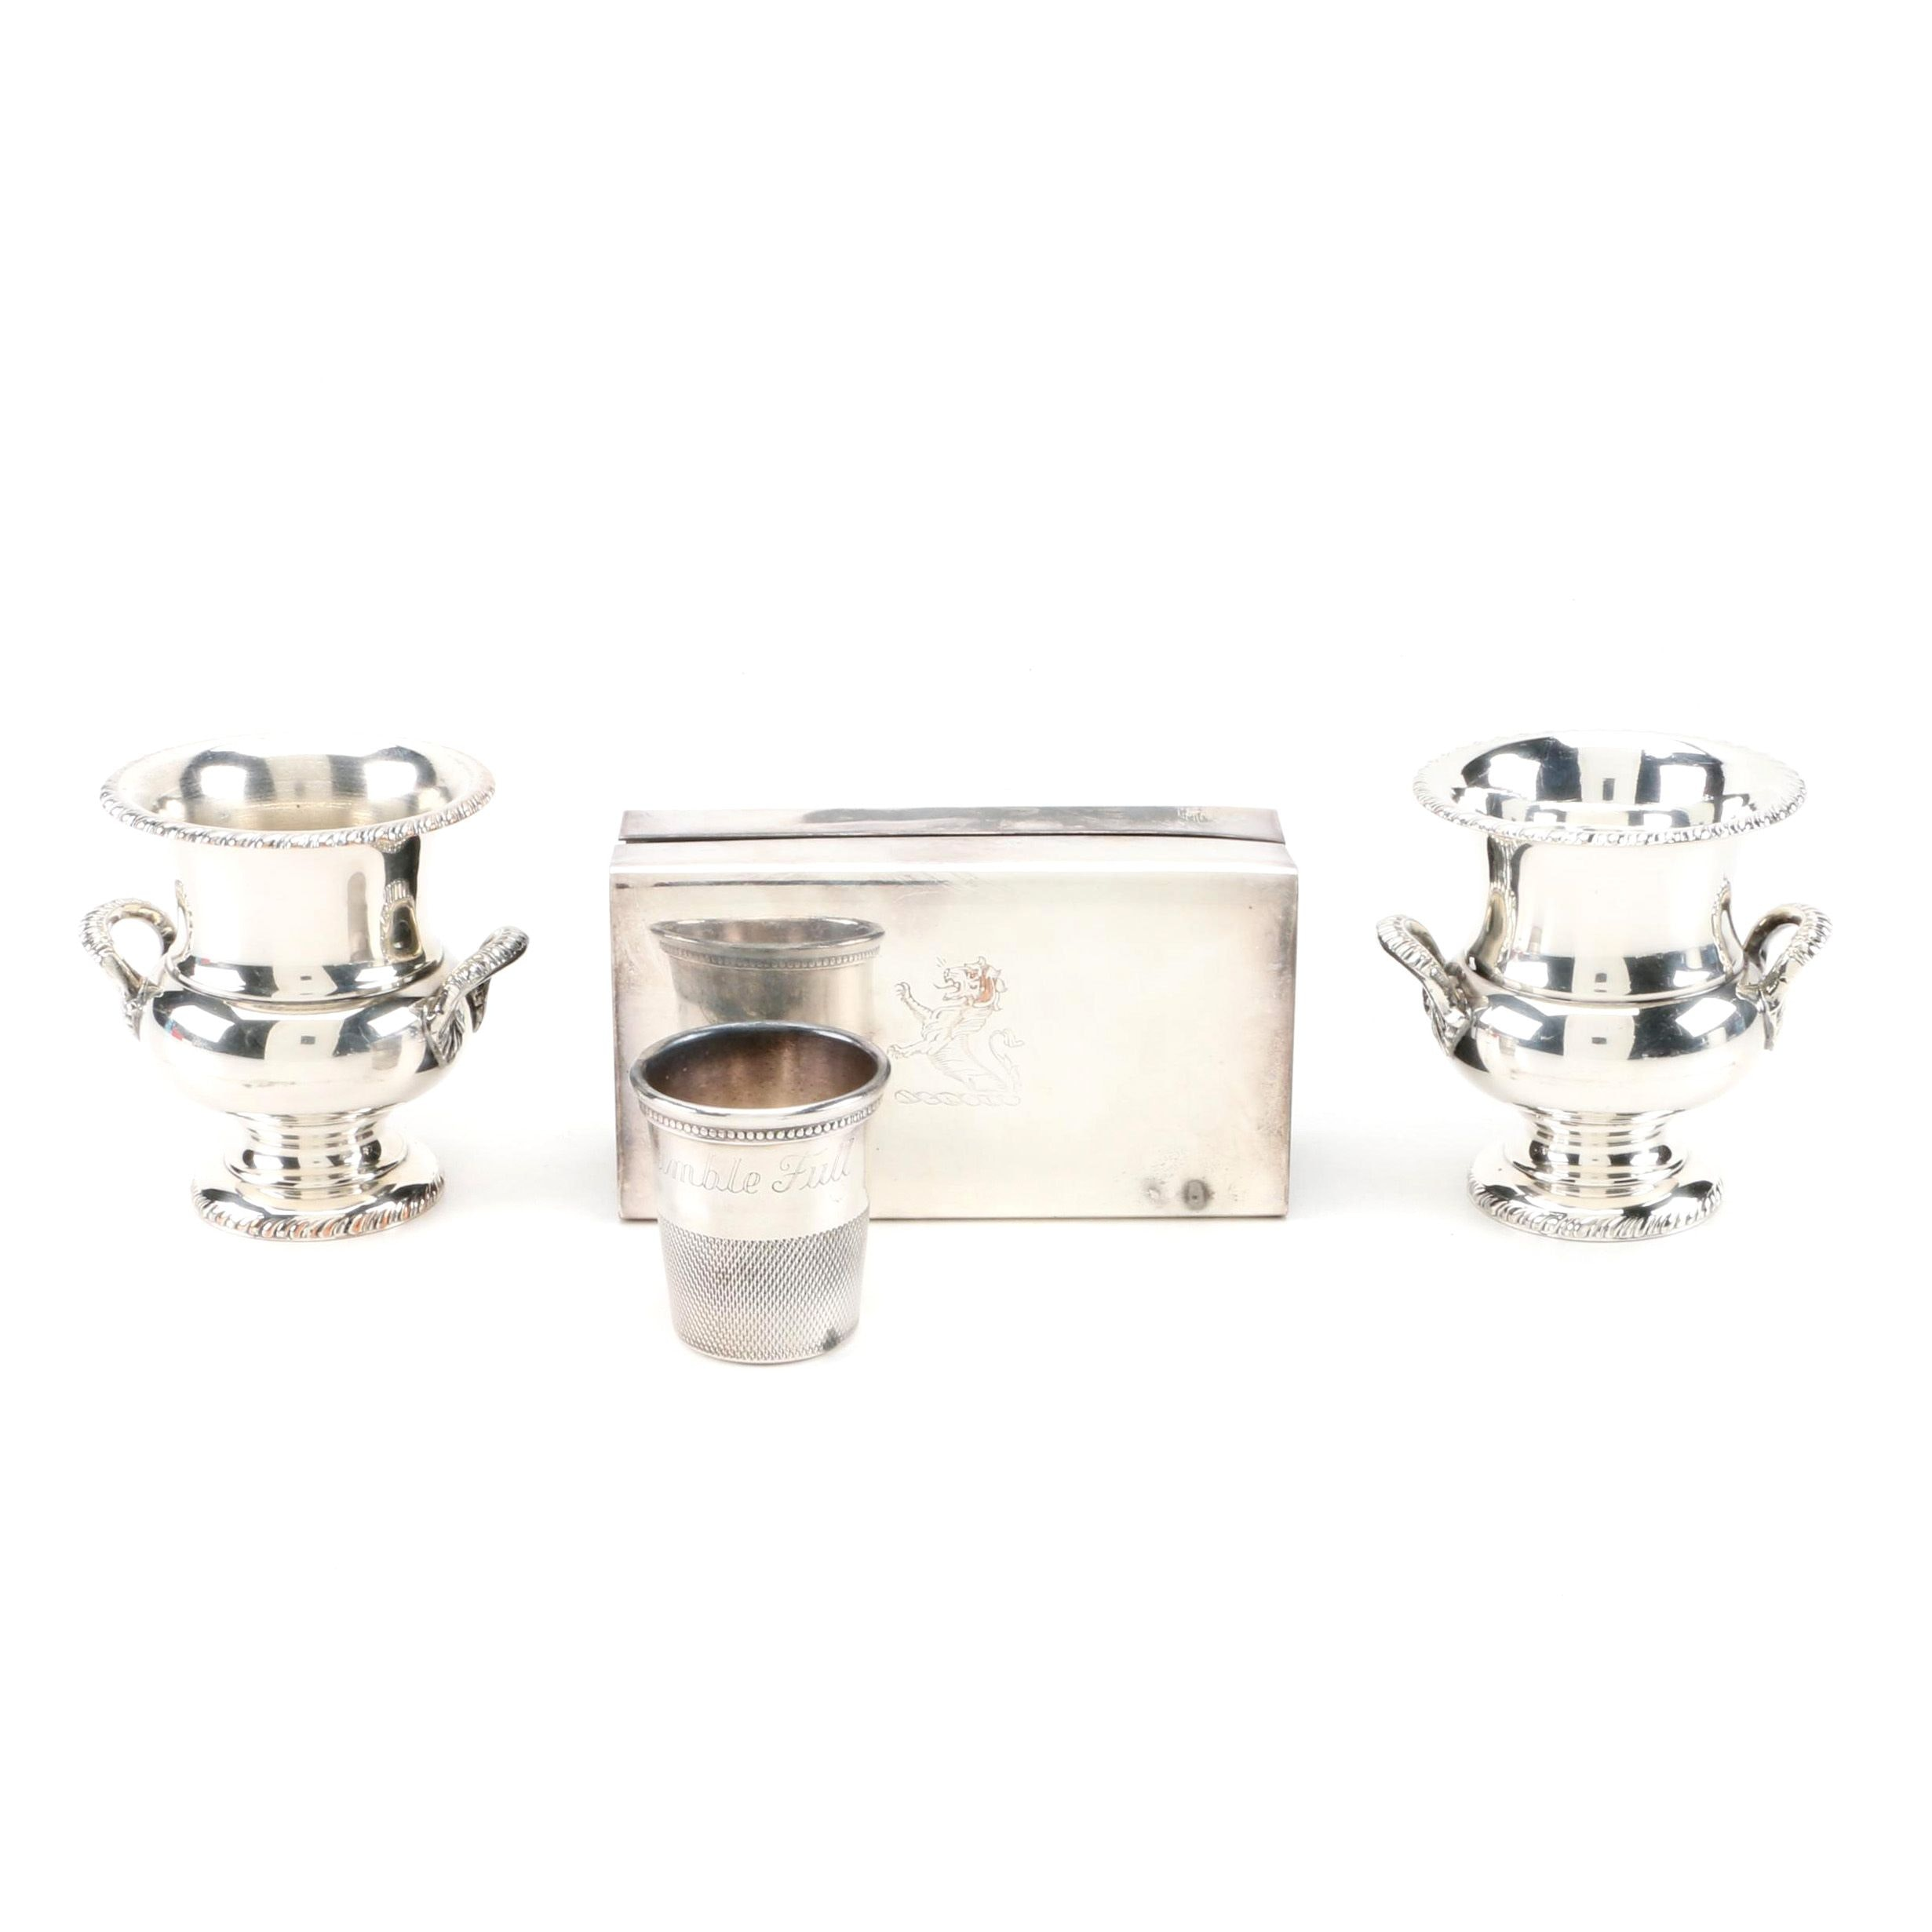 Sheffield Silver Co. Silver Plate Toothpick Holders with More Silver Plate